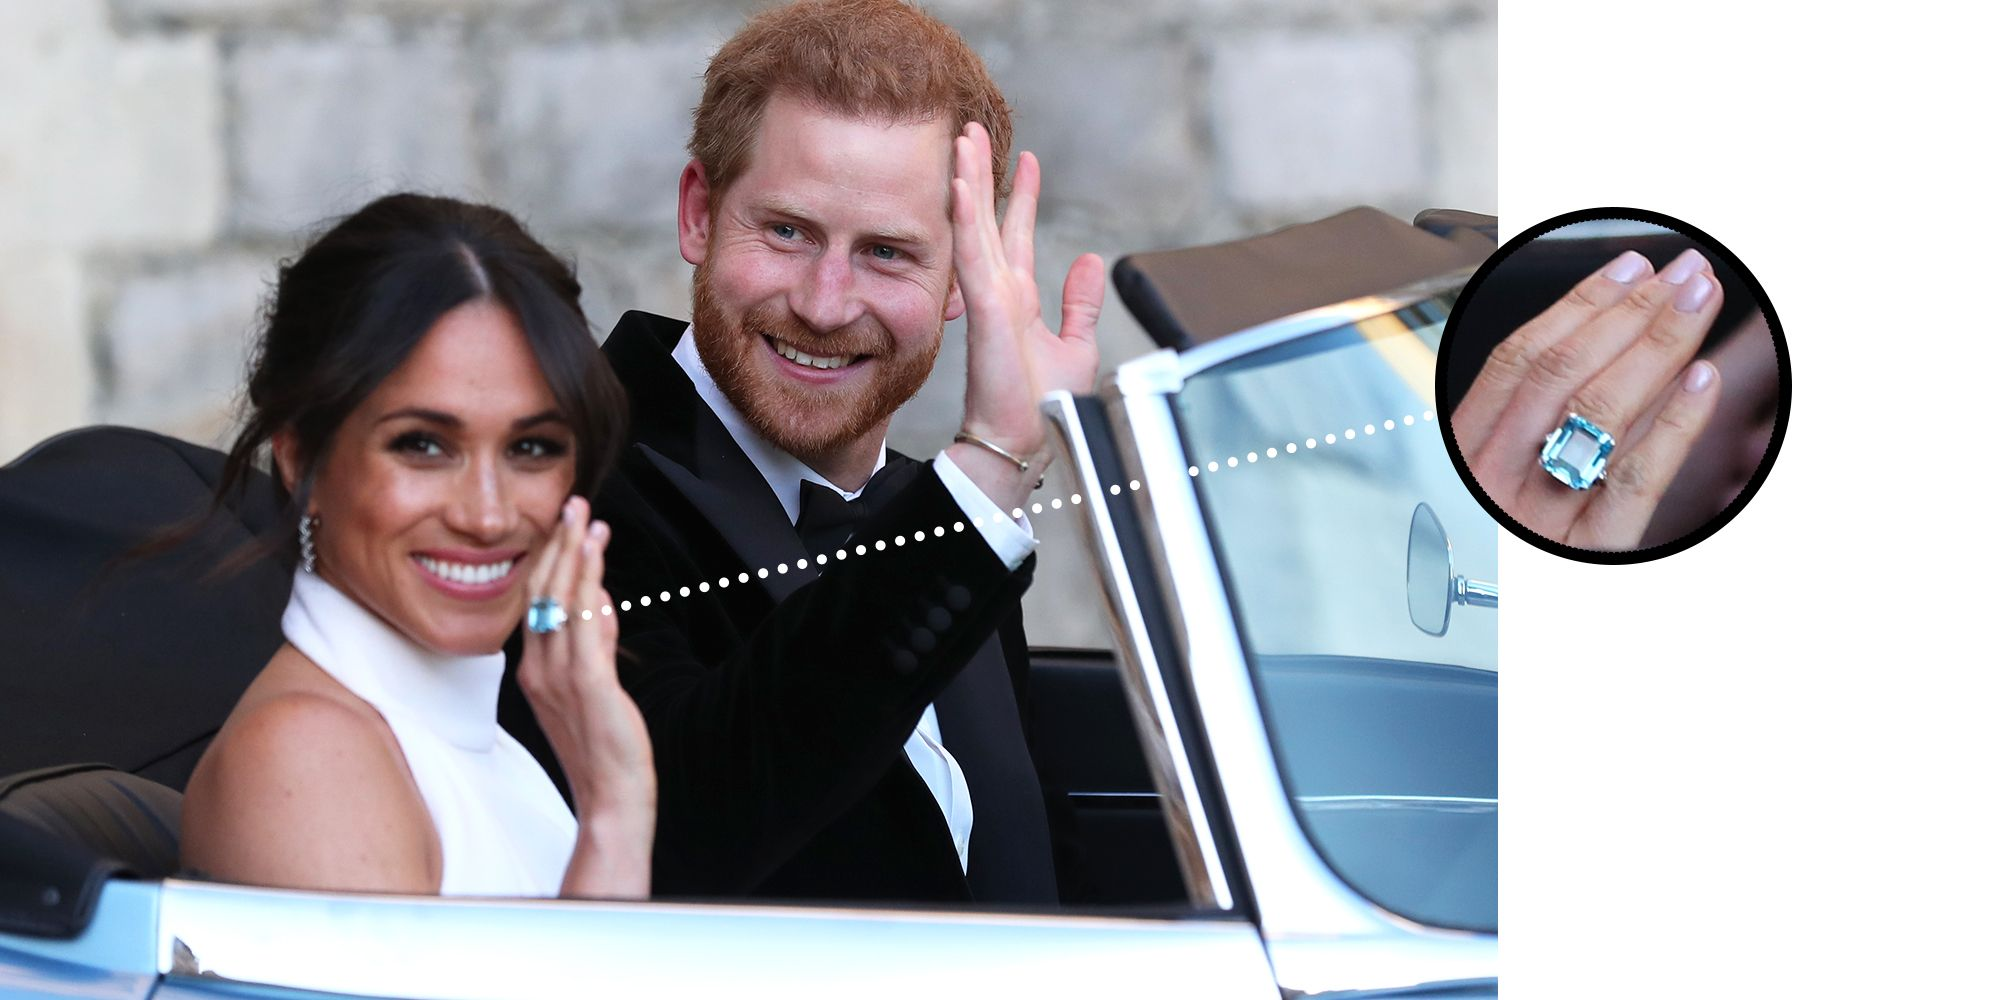 Meghan Wearing the Ring on May 19, 2018 Just hours after her wedding to Prince Harry at St George's Chapel, the new Duchess of Sussex stepped out in a stunning Stella McCartney gown. But it was the large aquamarine glittering on her finger that caught everyone's attention as the couple drove from Windsor Castle for their evening Reception at Frogmore House.